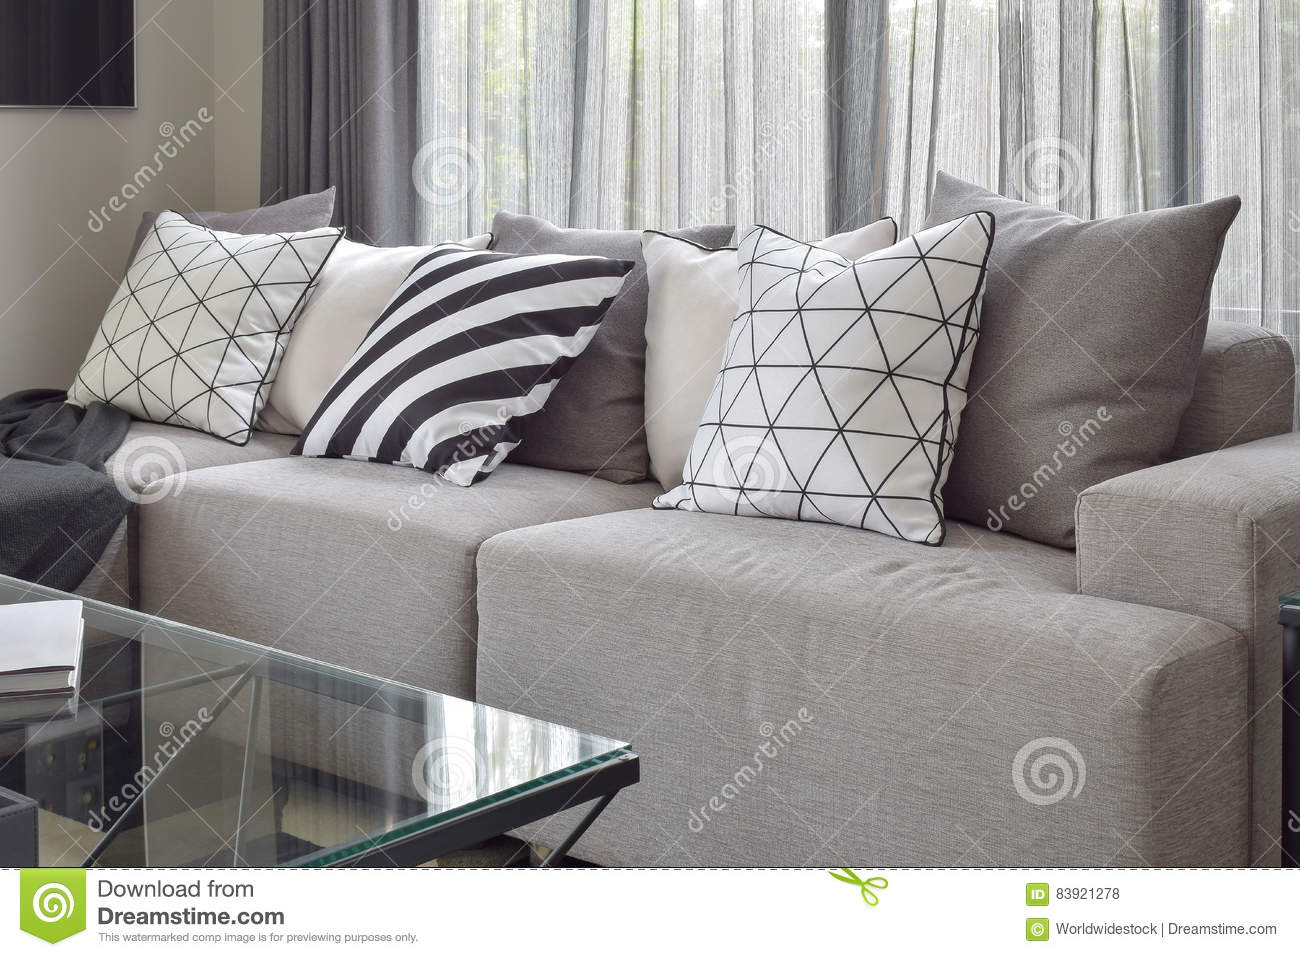 Light Gray Sofa With Varies Pattern Pillows In Livling